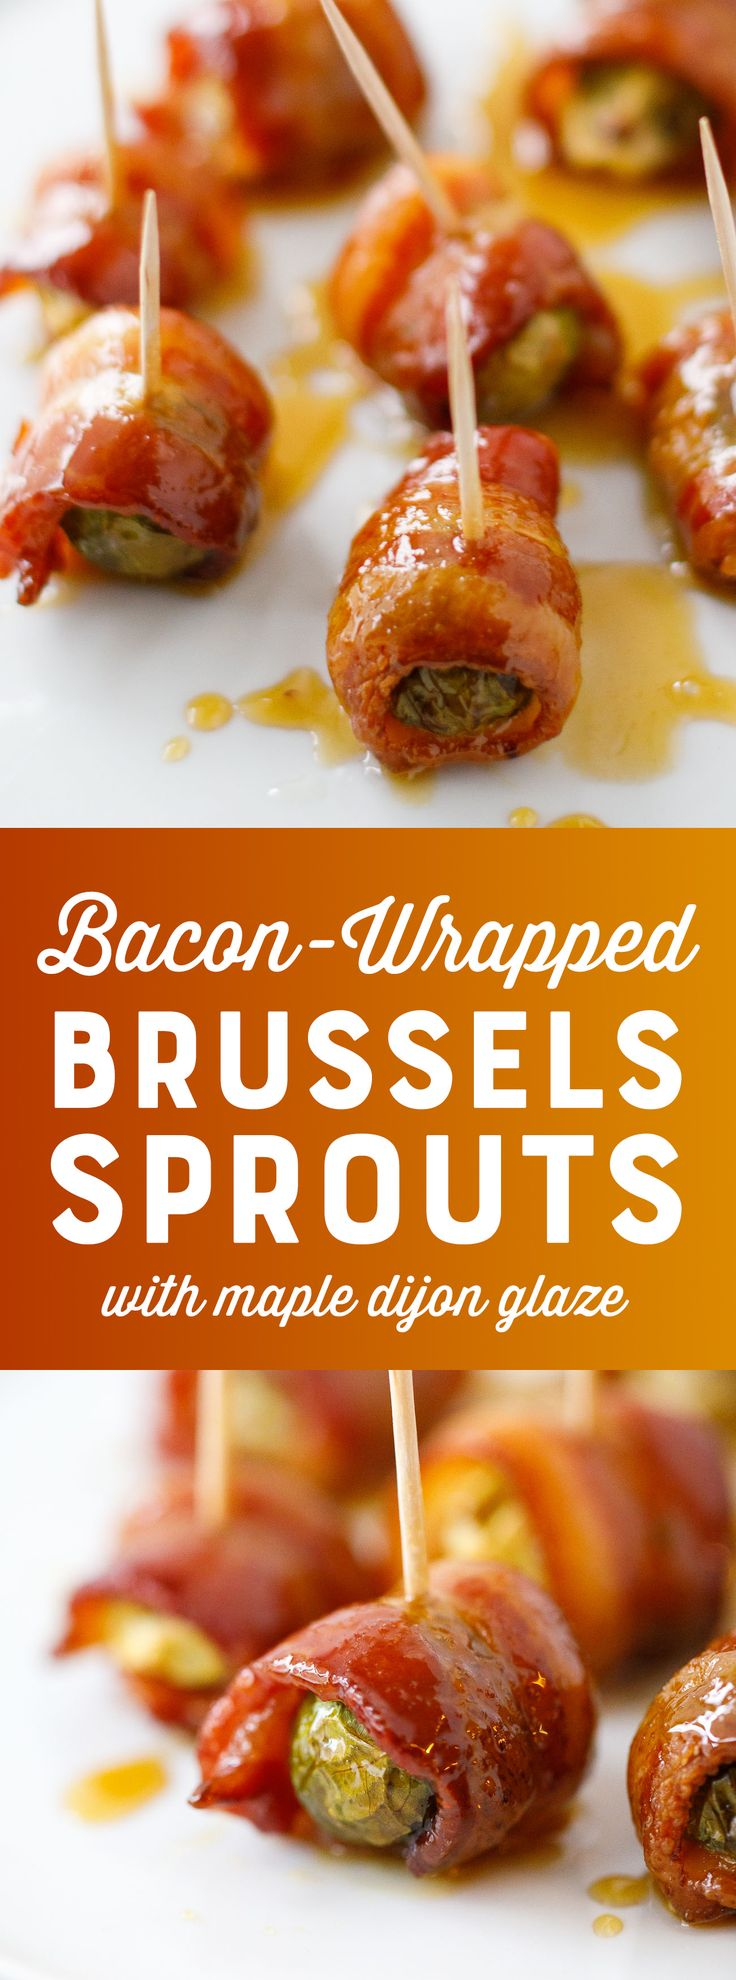 Bacon Wrapped Brussels Sprouts with Maple Dijon Glaze - Appetizer Recipe - Holiday Appetizer - Bacon Appetizer #Appetizers #Appetizer #Bacon